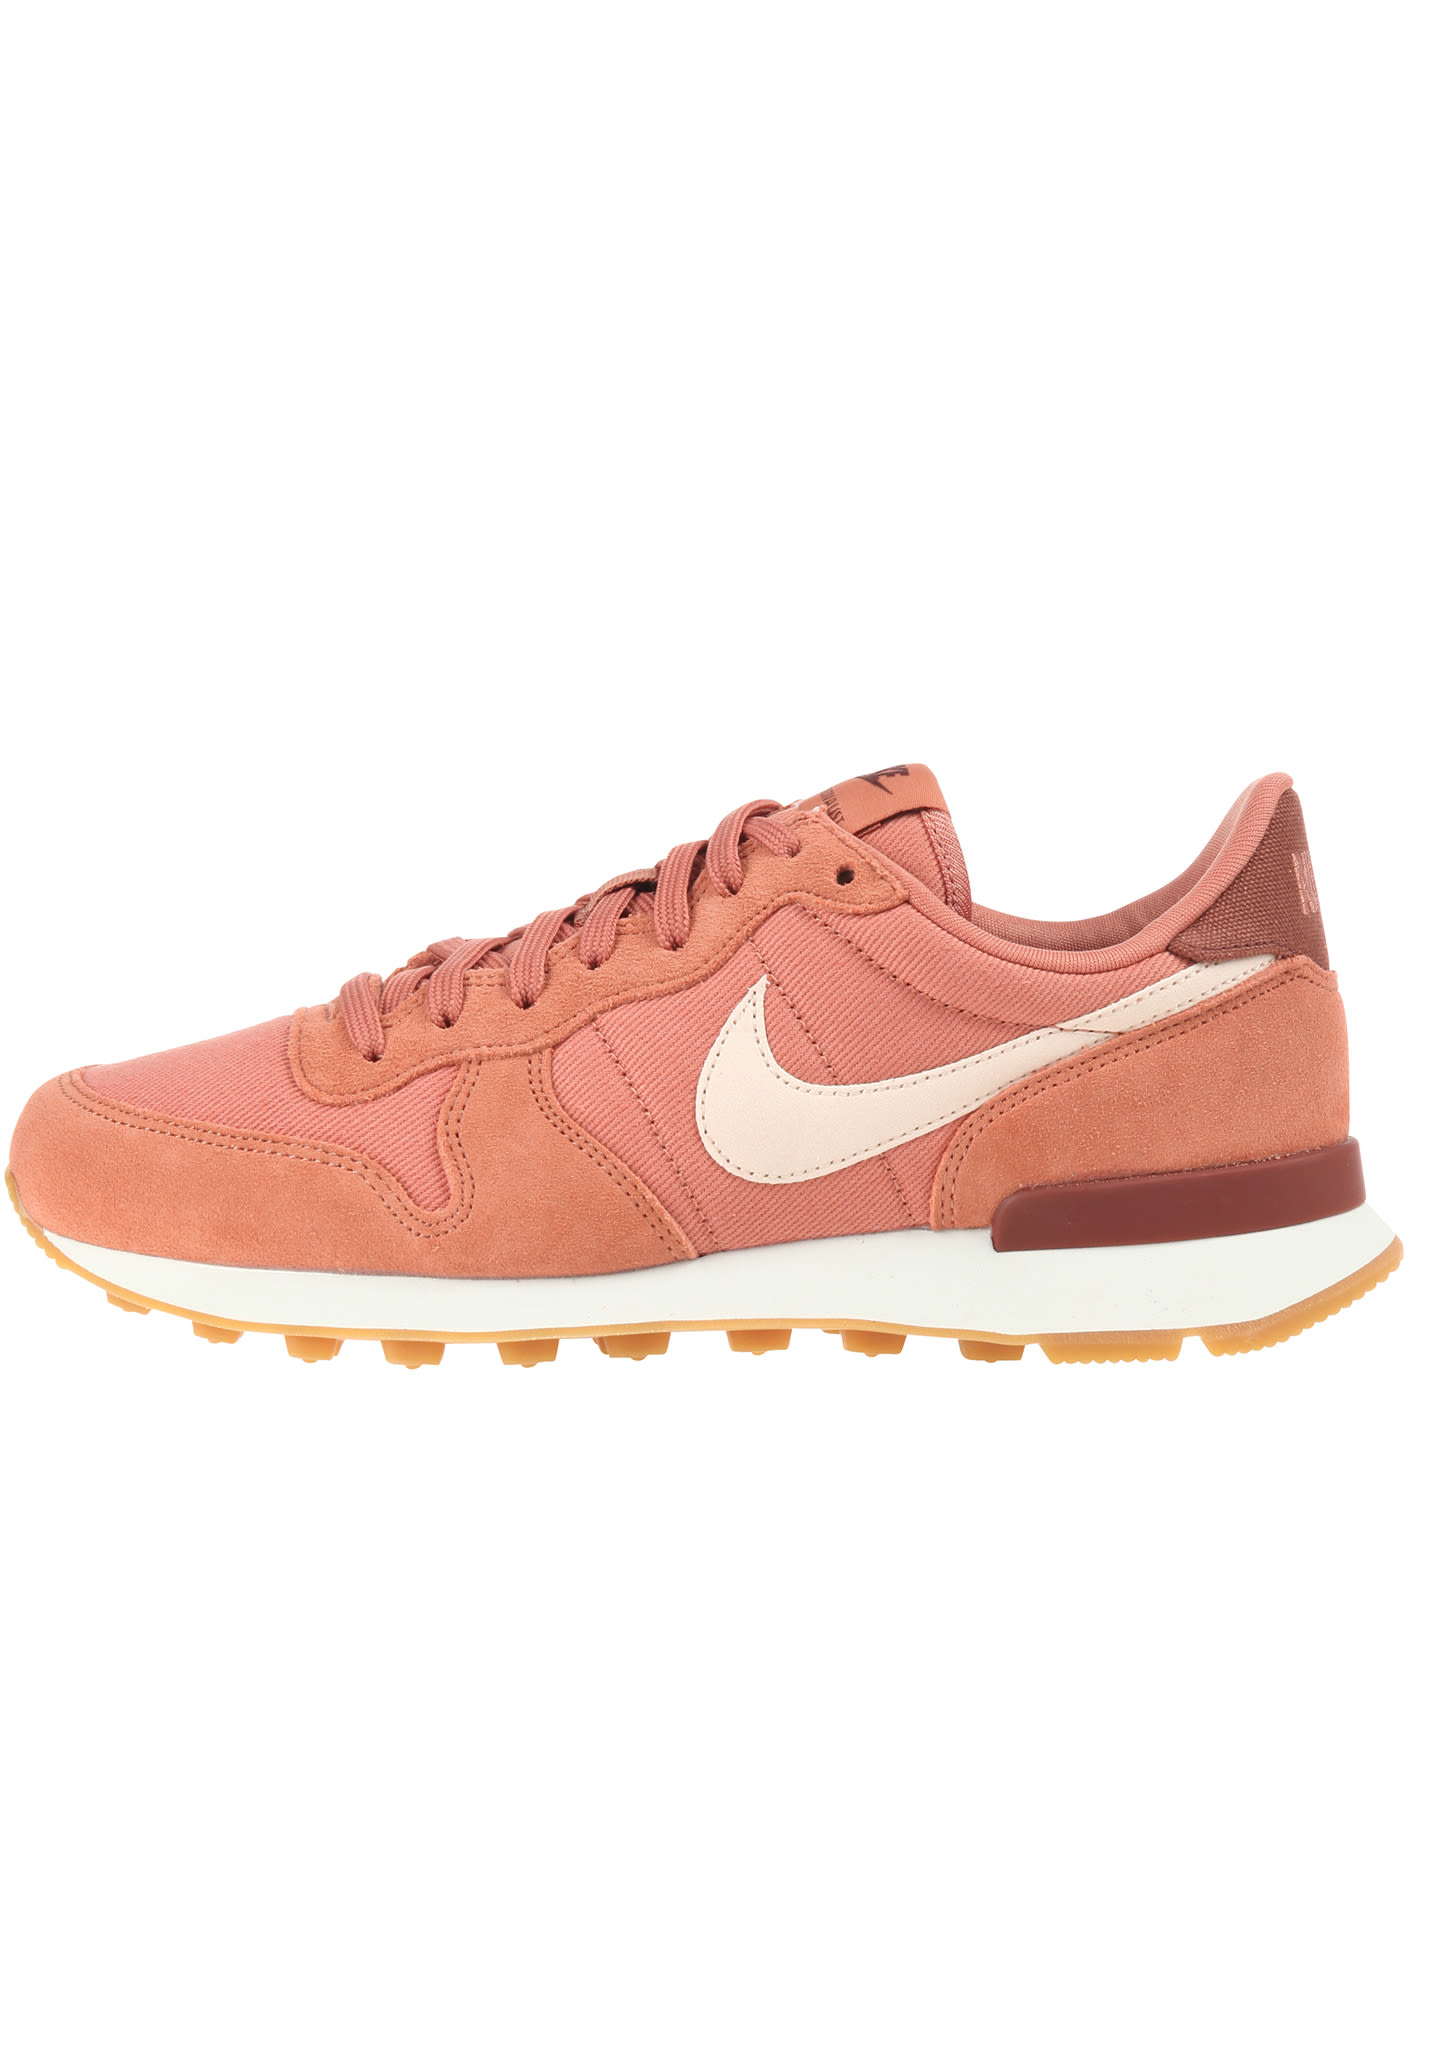 nike sportswear internationalist femme